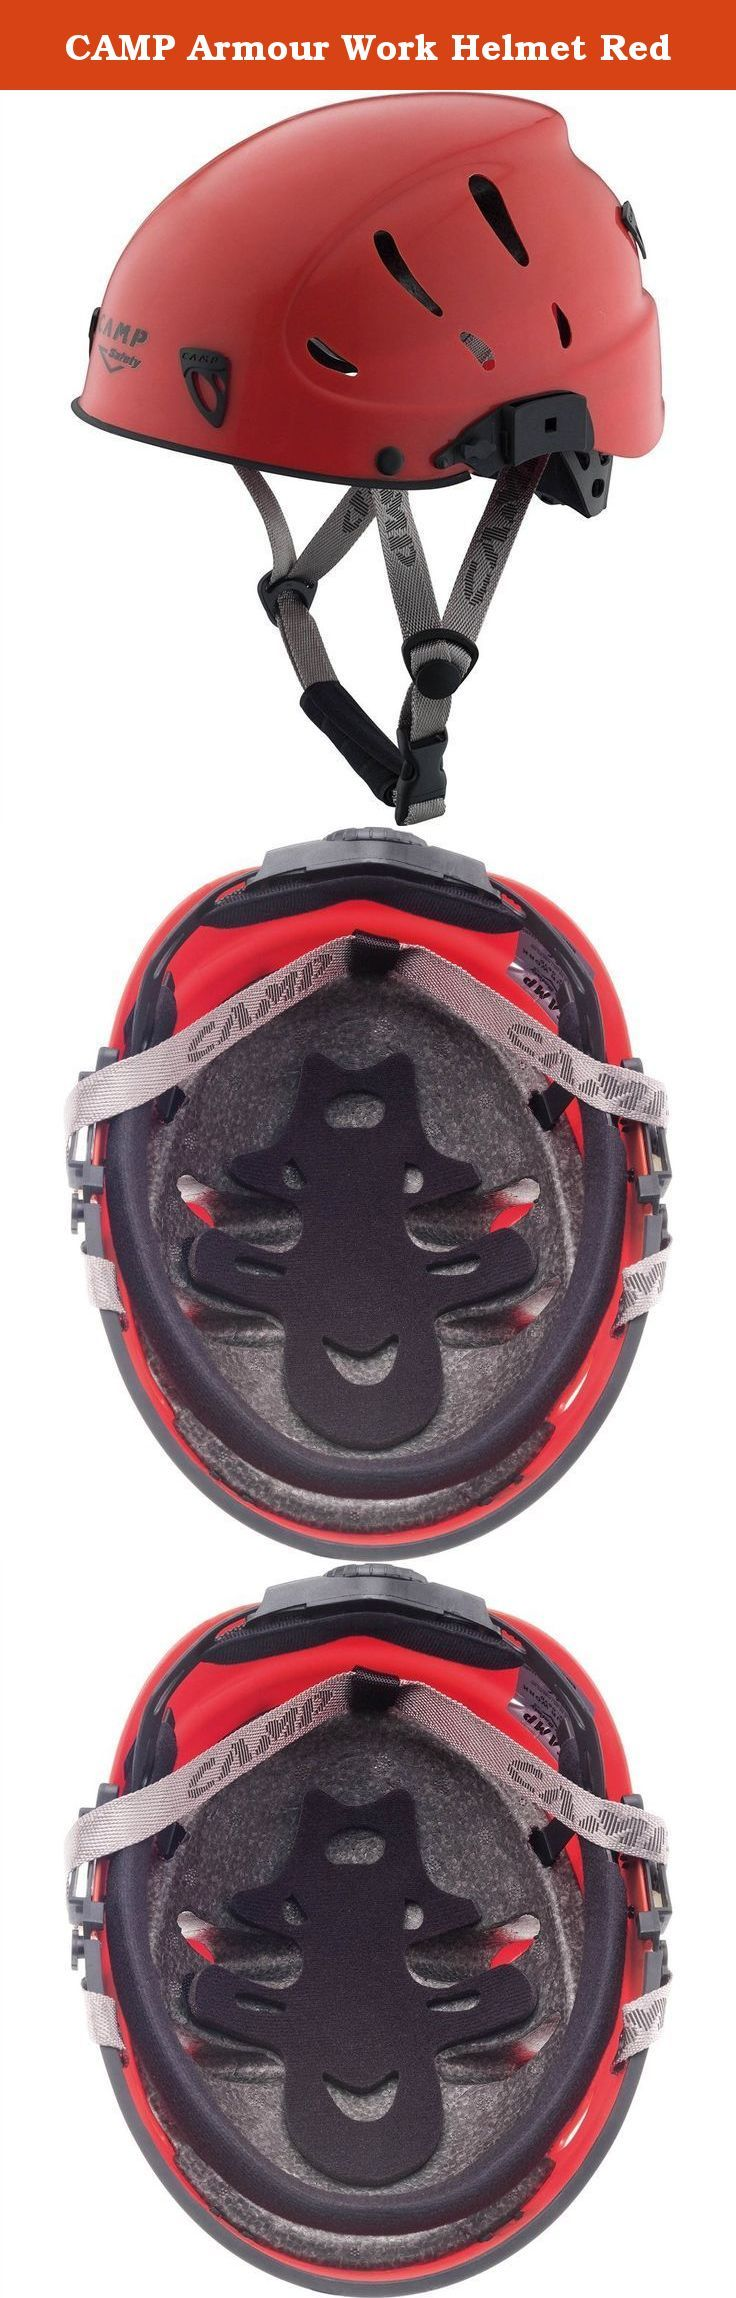 CAMP Armour Work Helmet Red. The Armour Work is an upgraded model of the standard Armour and now includes slots for cap attached ear protectors. Armour Work is a light and comfortable helmet with an attractive design, now with a proprietary visor option. Designed for Industrial use. Includes mountaineering certification which meets the new regulations for work at heights, for applications where the chin strap must not be releasable and the helmet can withstand multiple blows from various...